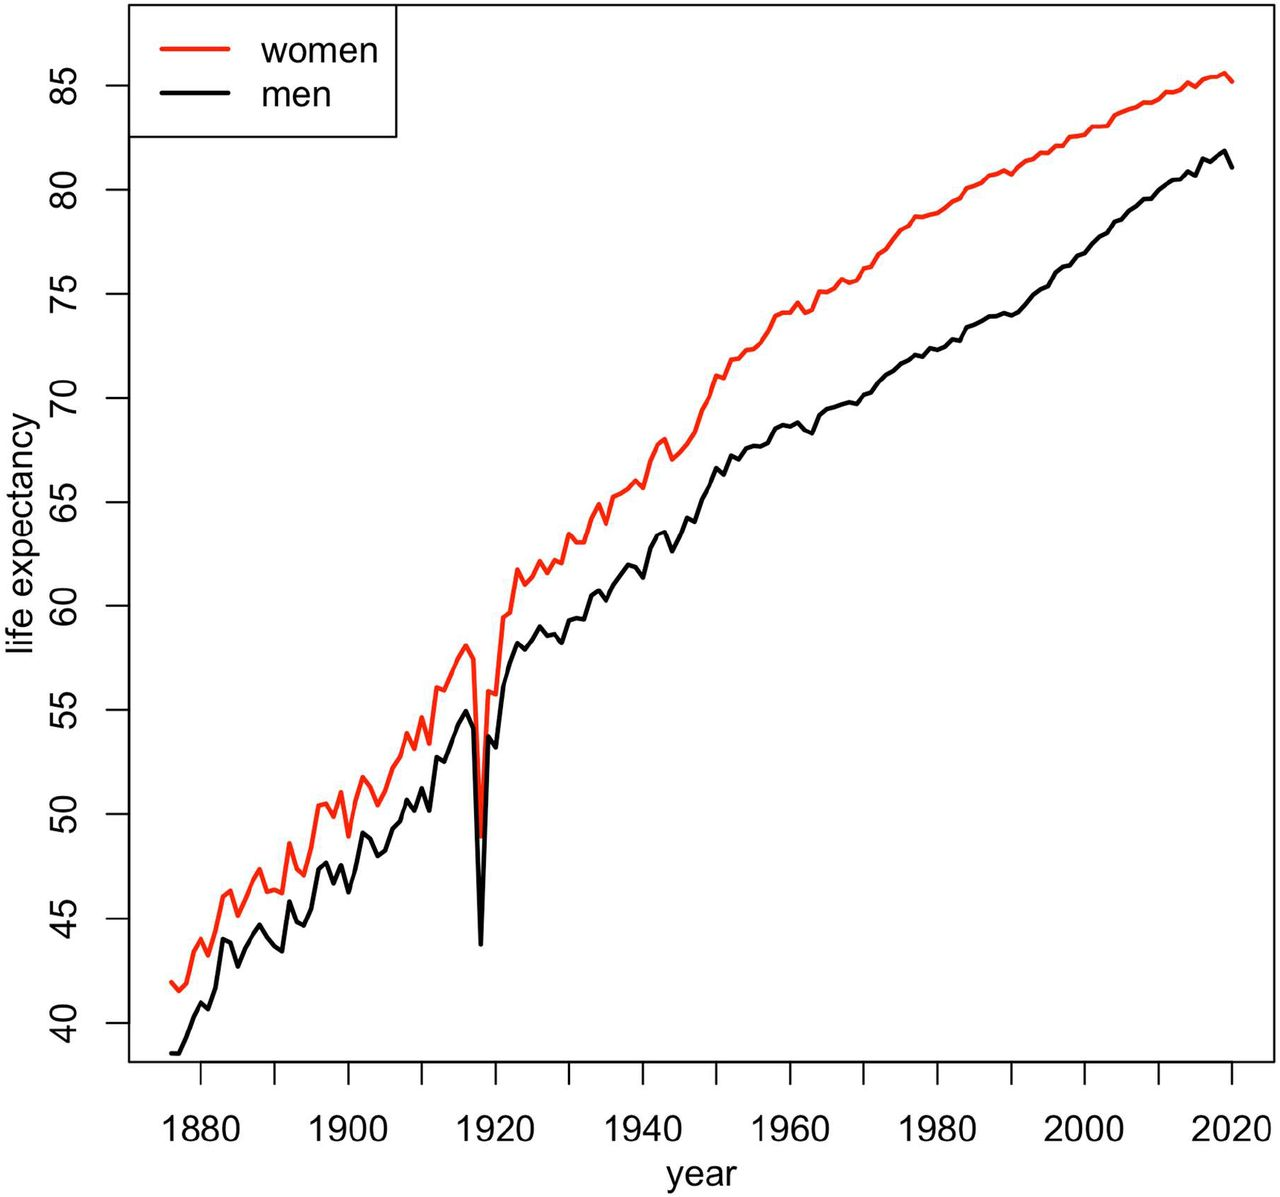 Life expectancy in Switzerland for the period 1876-2020 for men and women (data from the Swiss Federal Statistical Office and the Human Mortality Database).